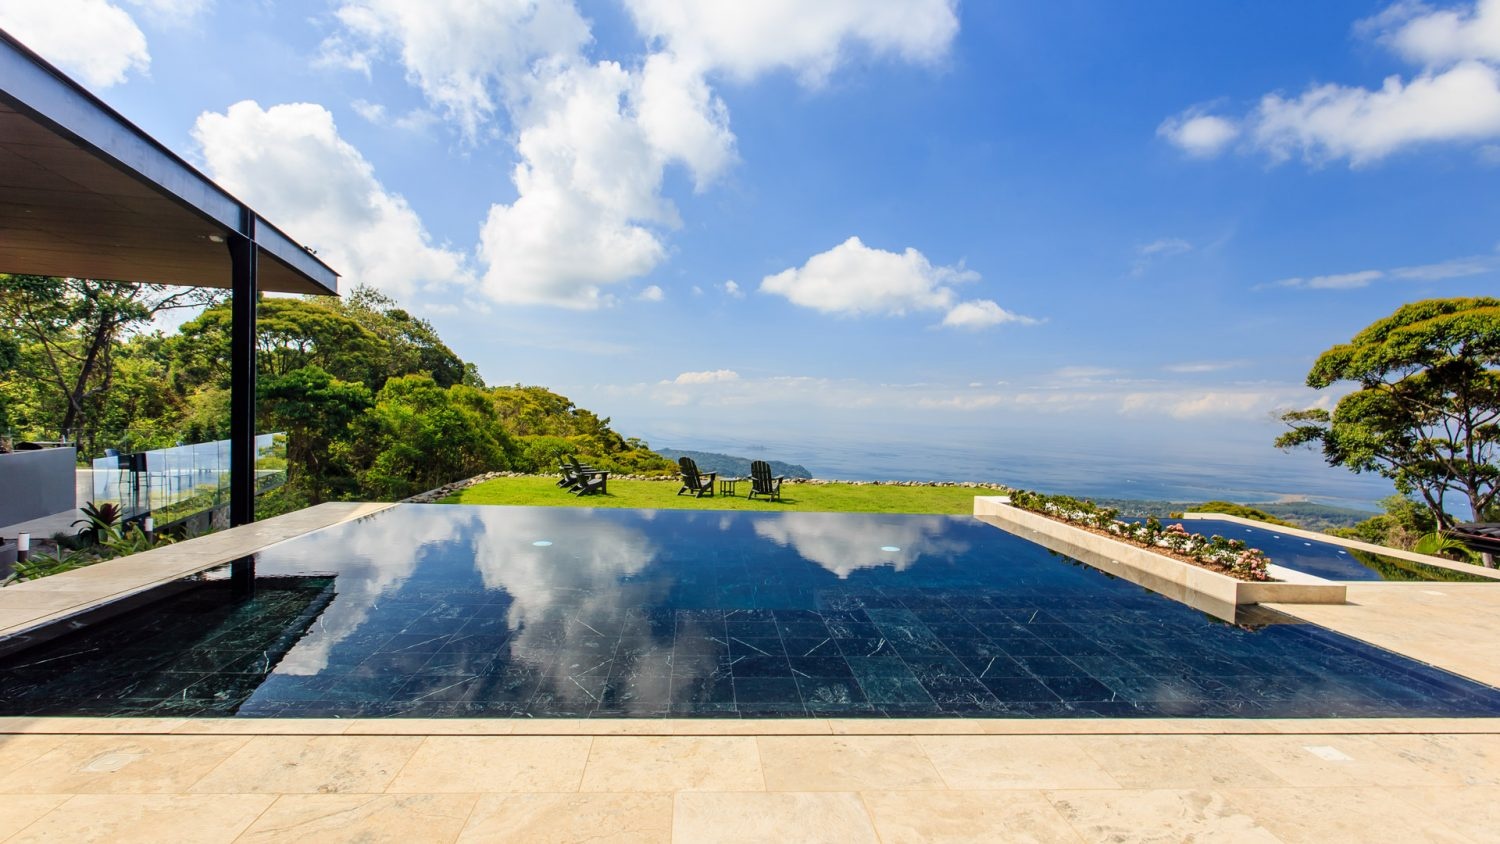 The infinity pool at the Rancho Pacifico Costa Rica luxury resort.